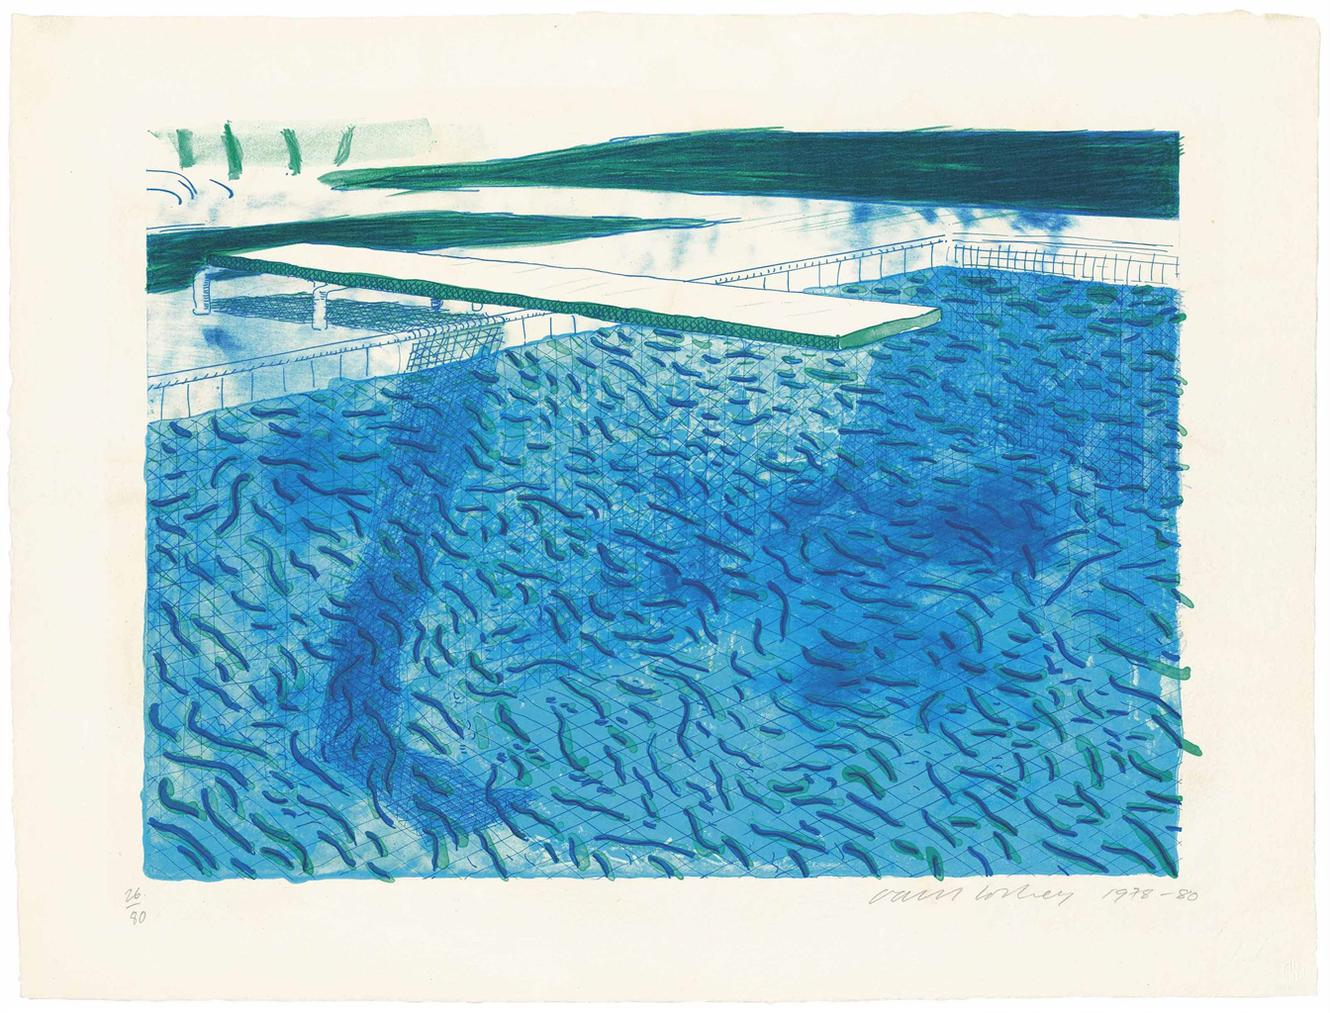 David Hockney-Lithograph Of Water Made Of Thick And Thin Lines, A Green Wash, A Light Blue Wash, And A Dark Blue Wash-1980